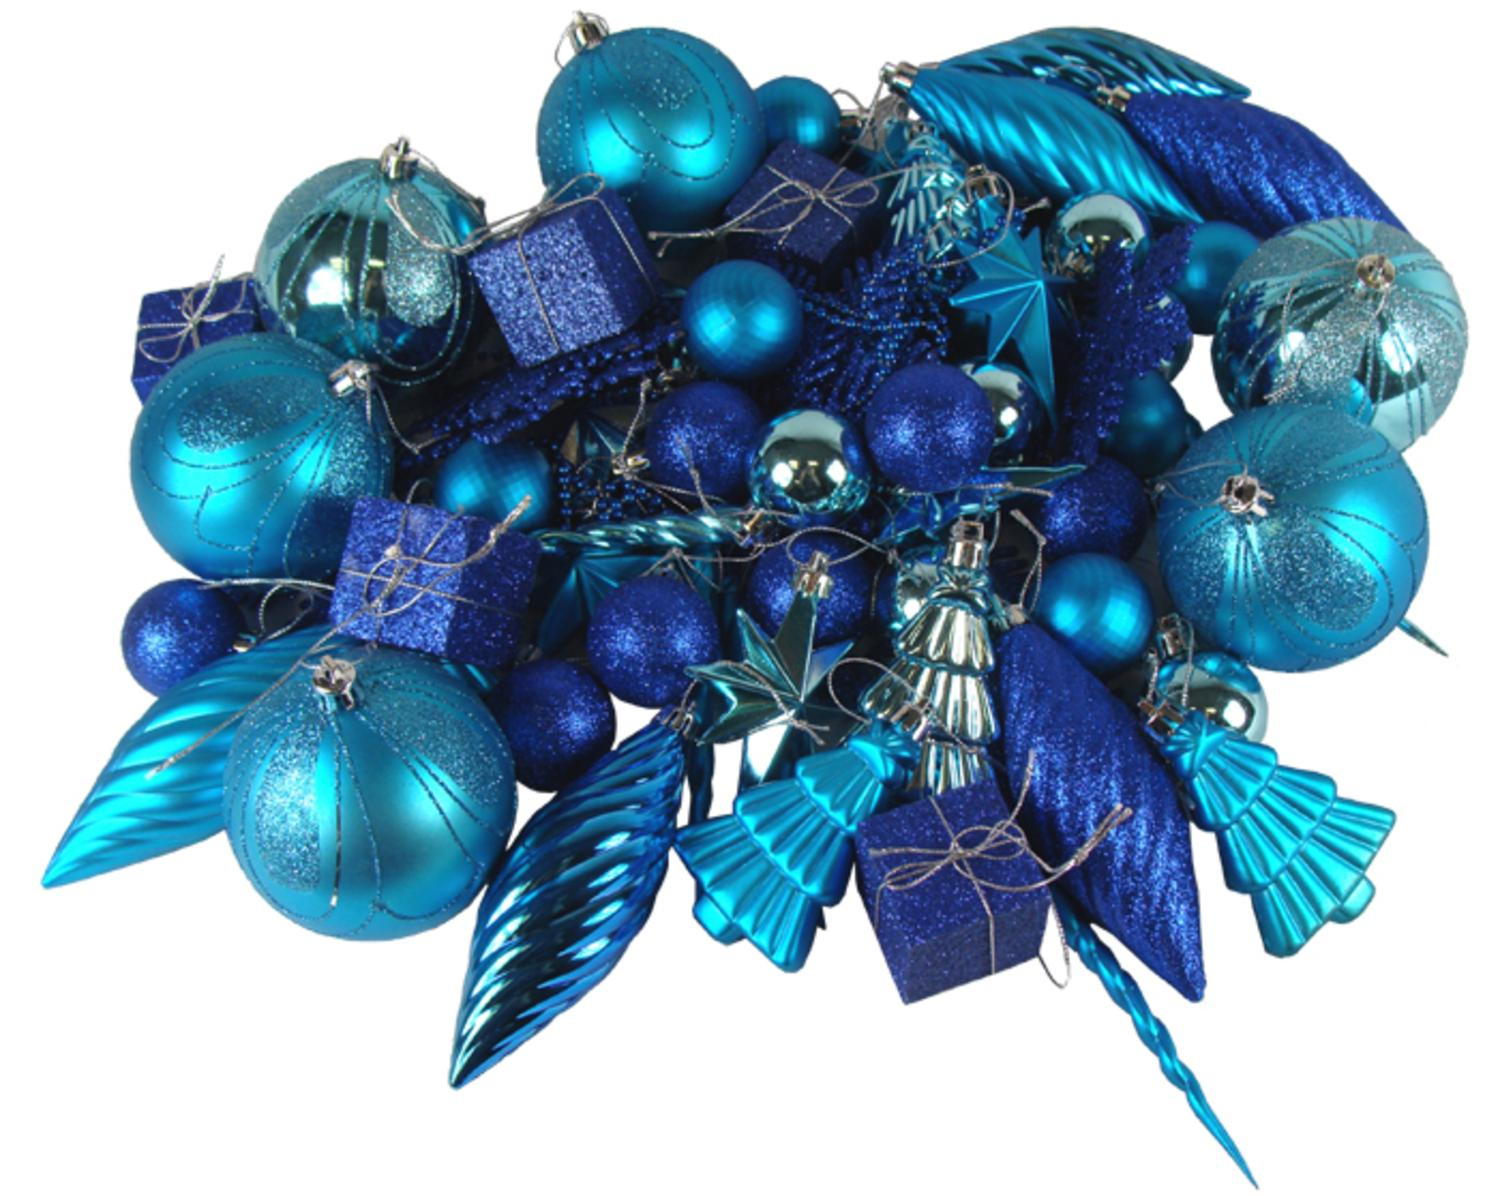 125 piece club pack of shatterproof regal peacock blue christmas ornaments walmartcom - Peacock Christmas Decorations